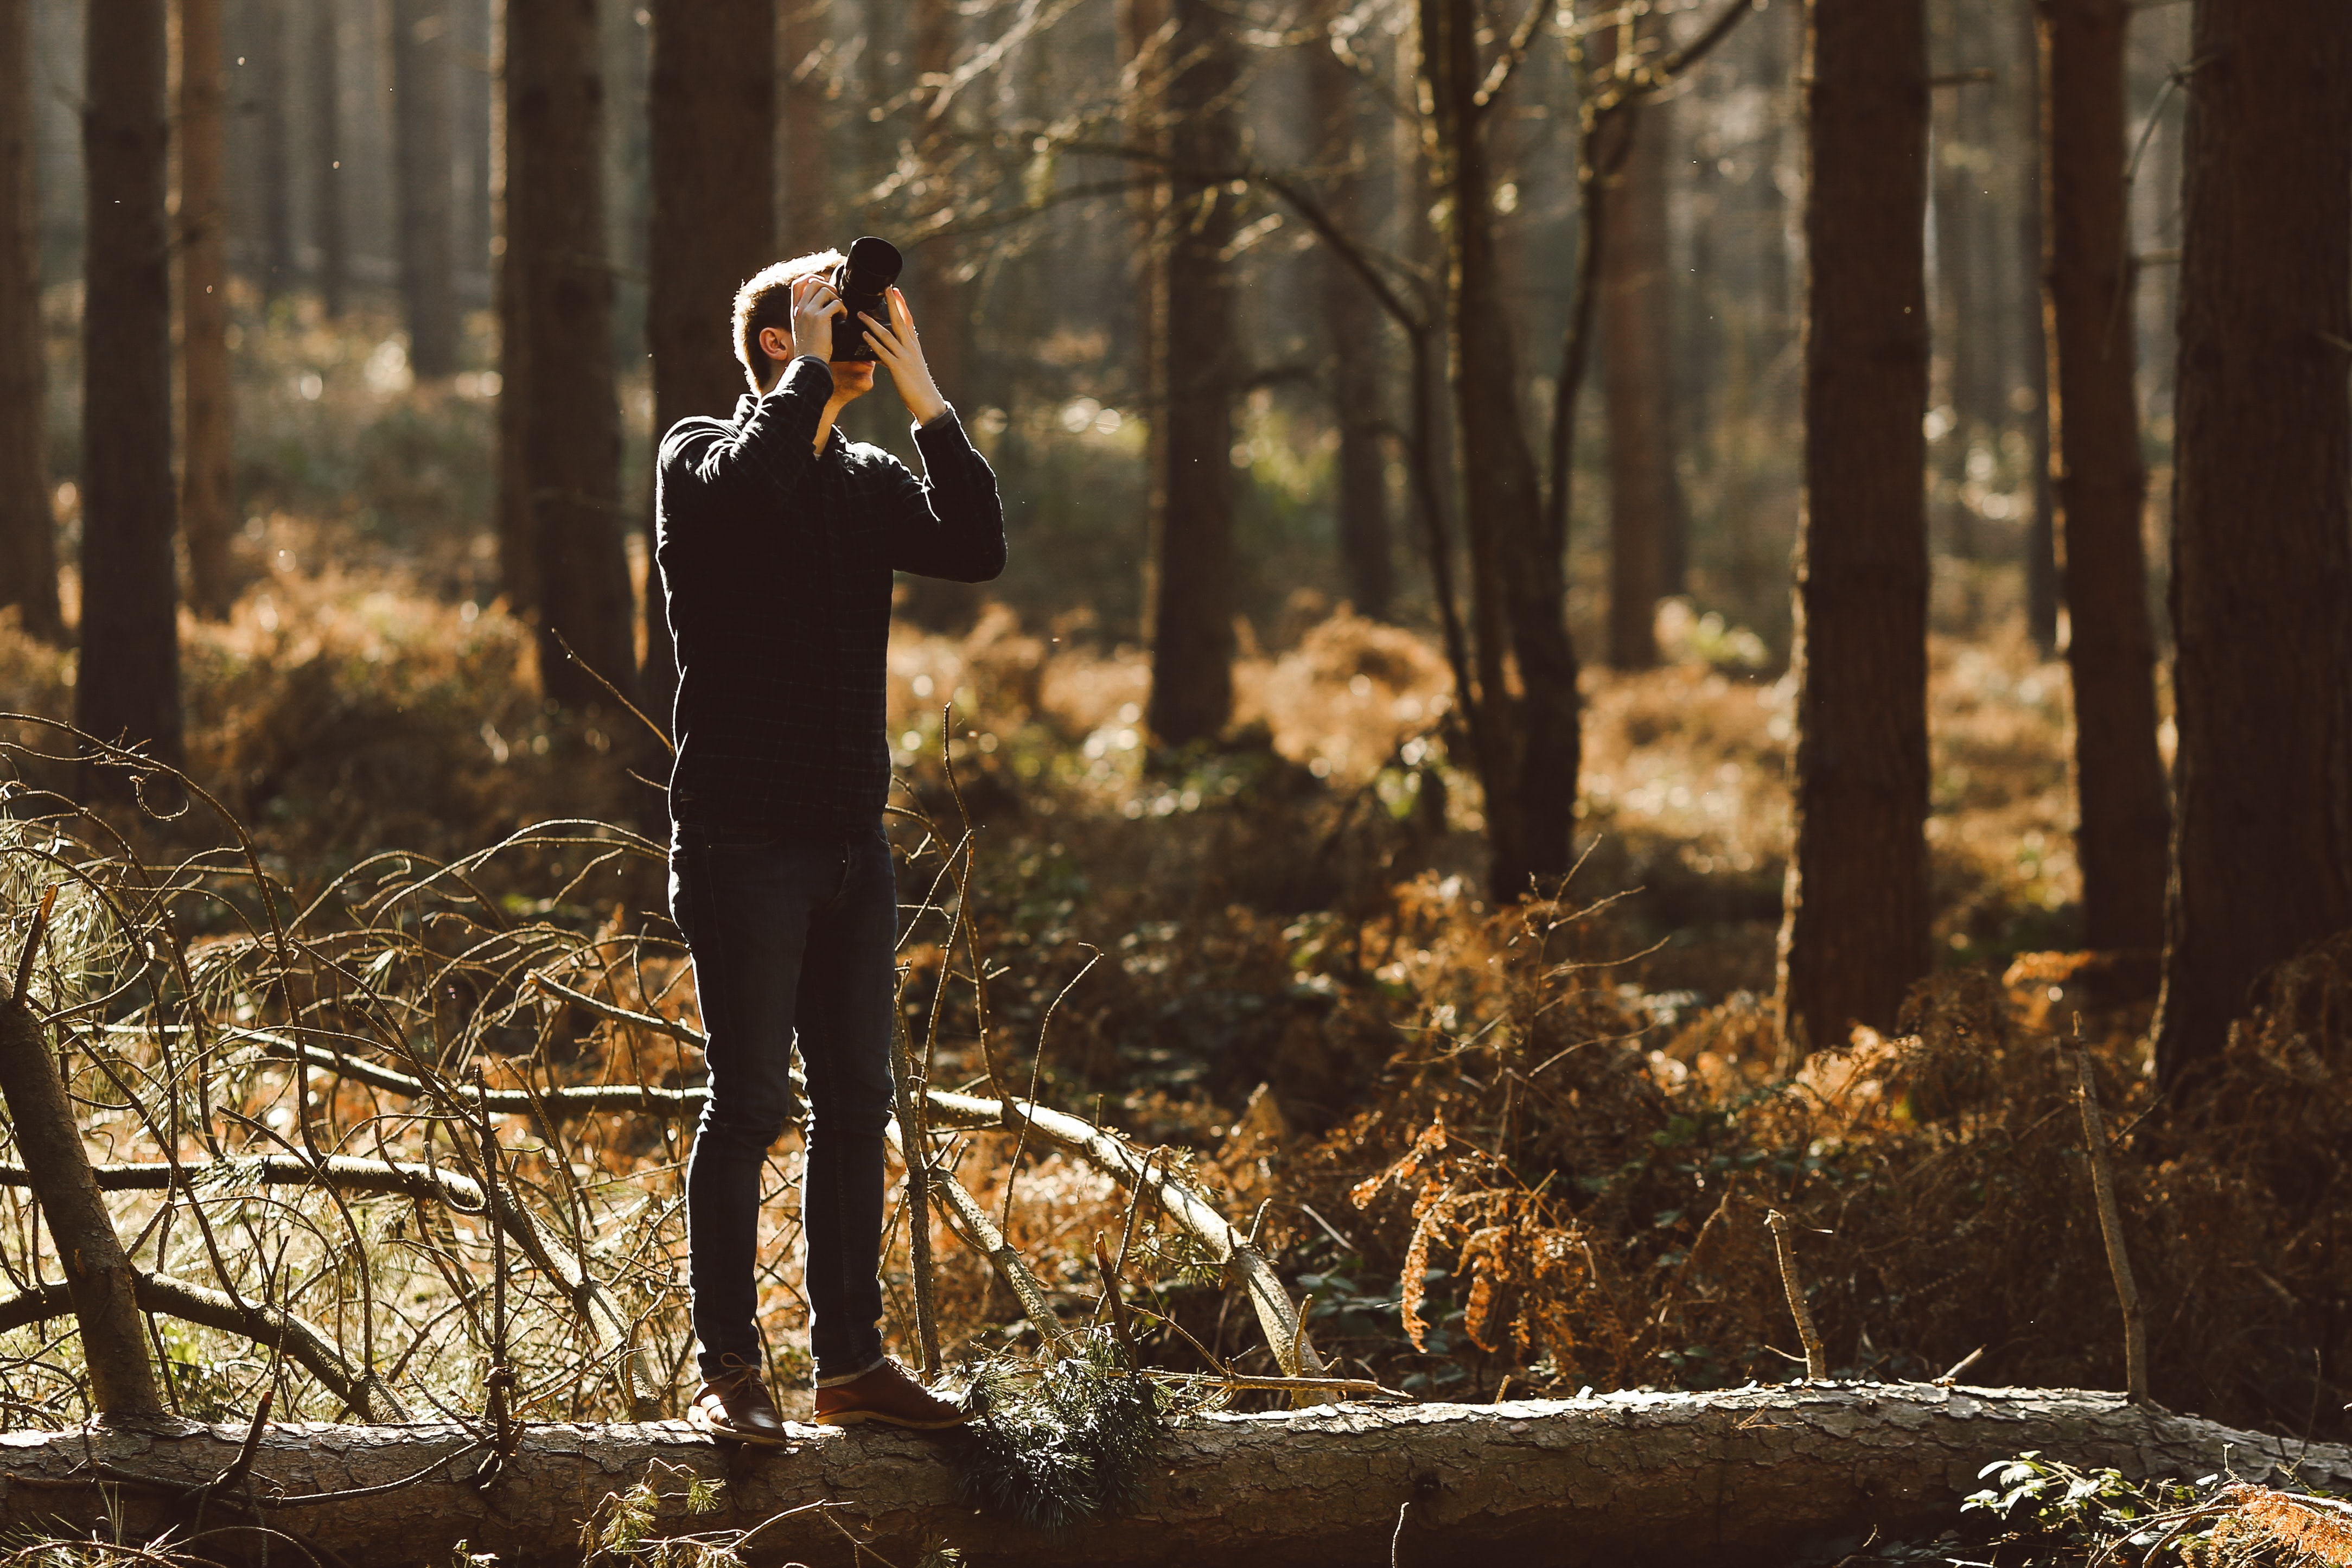 A person in dark clothing stands on a fallen tree in a forest taking a photo